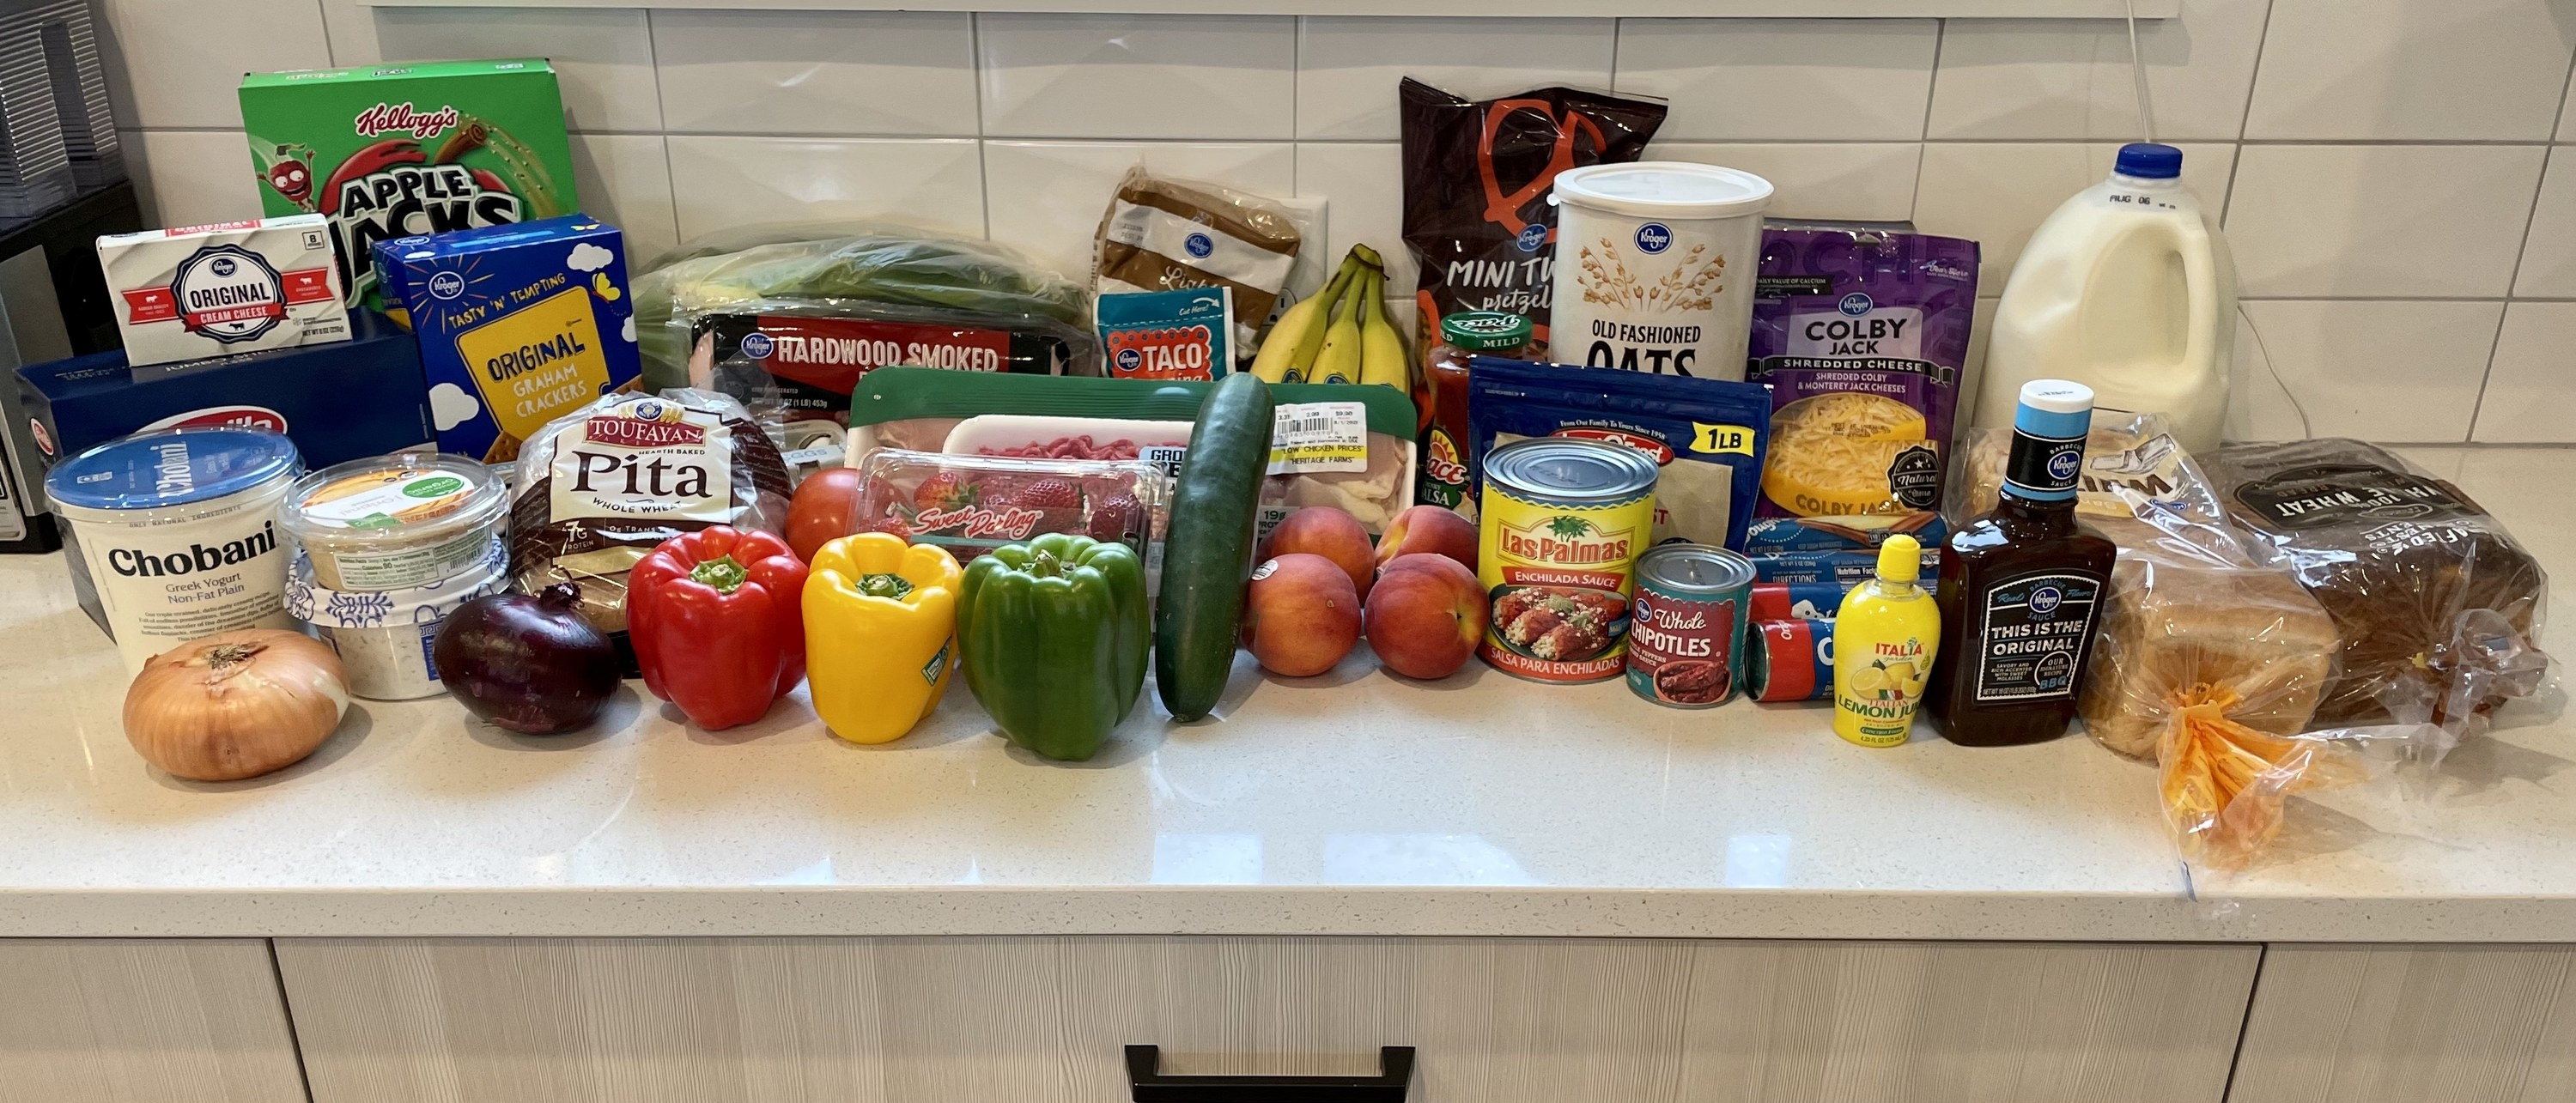 Groceries spread out on the countertop